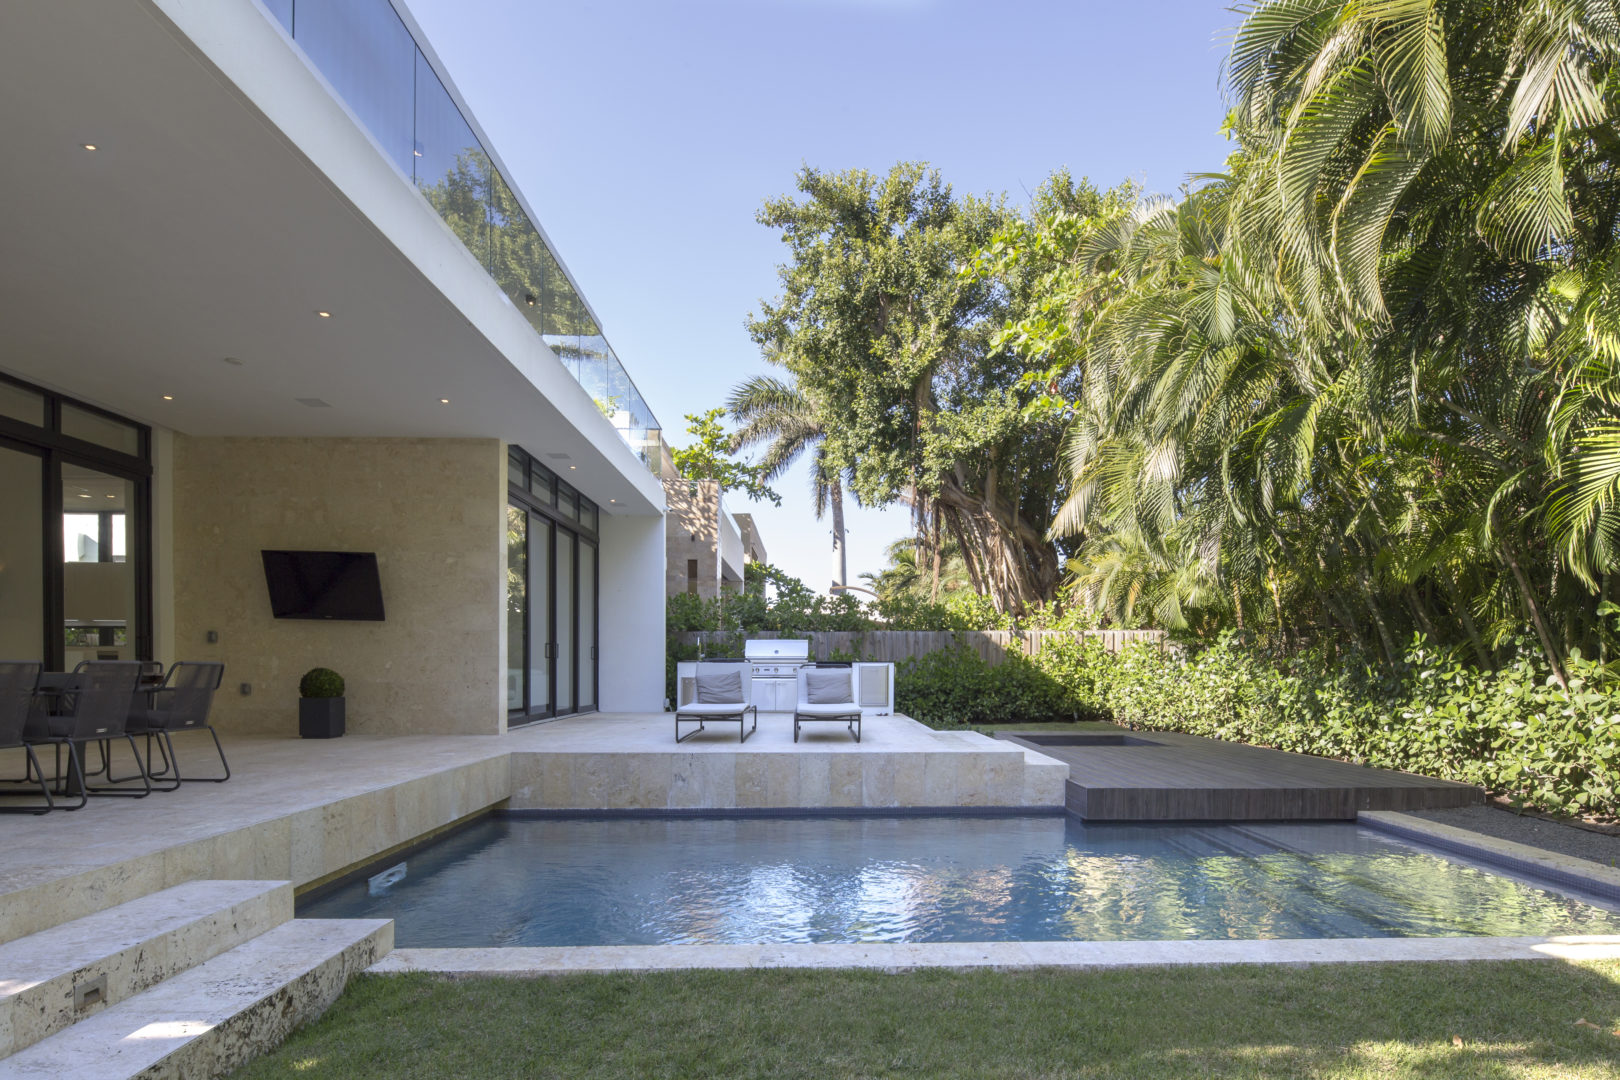 Golden Beach Residence High-end Builder Contractor Miami Modern Luxury Facade pool miami deck stone steps light grass